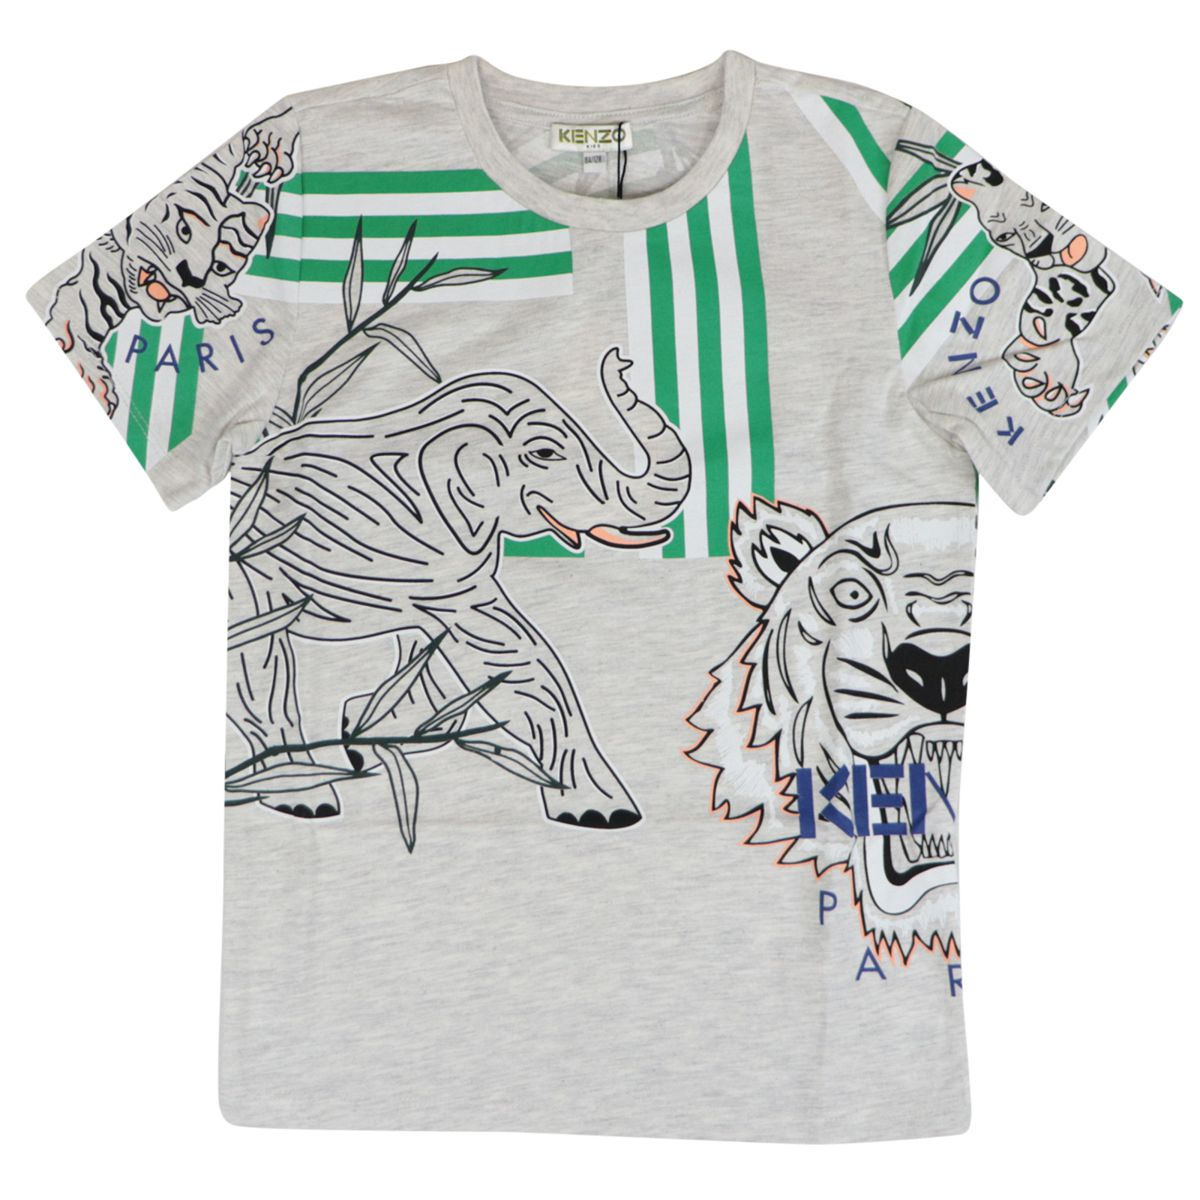 Crew neck cotton T-shirt with contrasting prints and logo Grey Kenzo